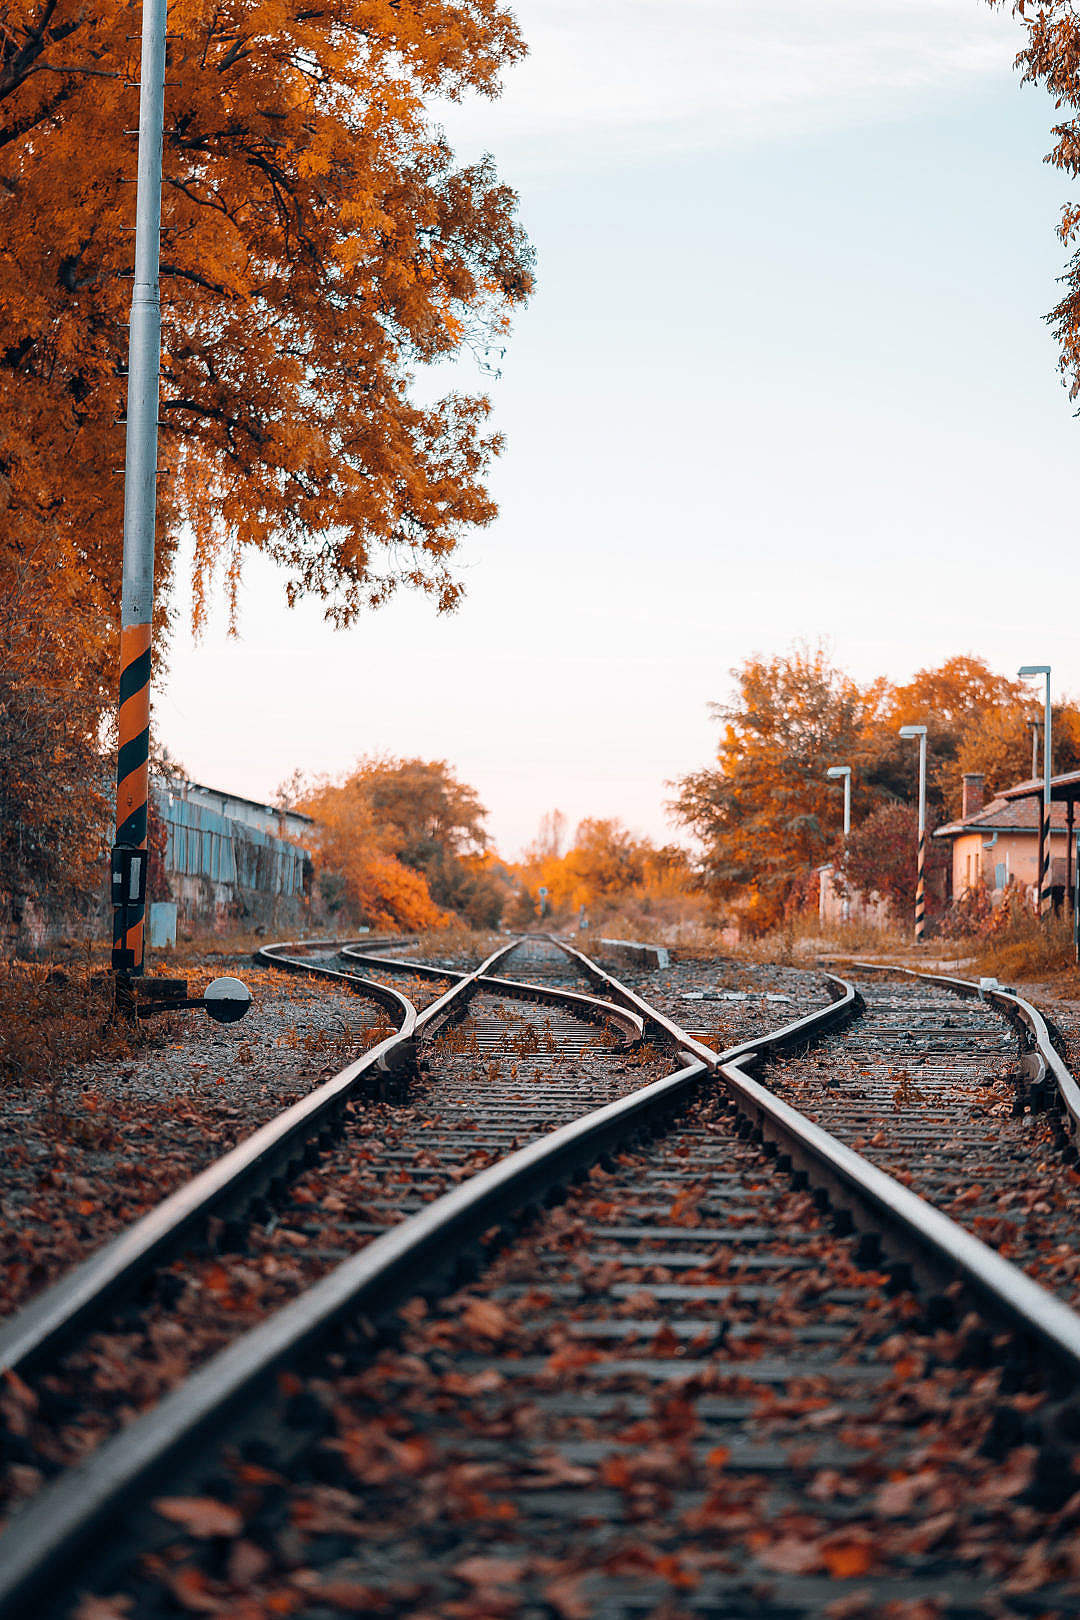 Download Railway Line FREE Stock Photo